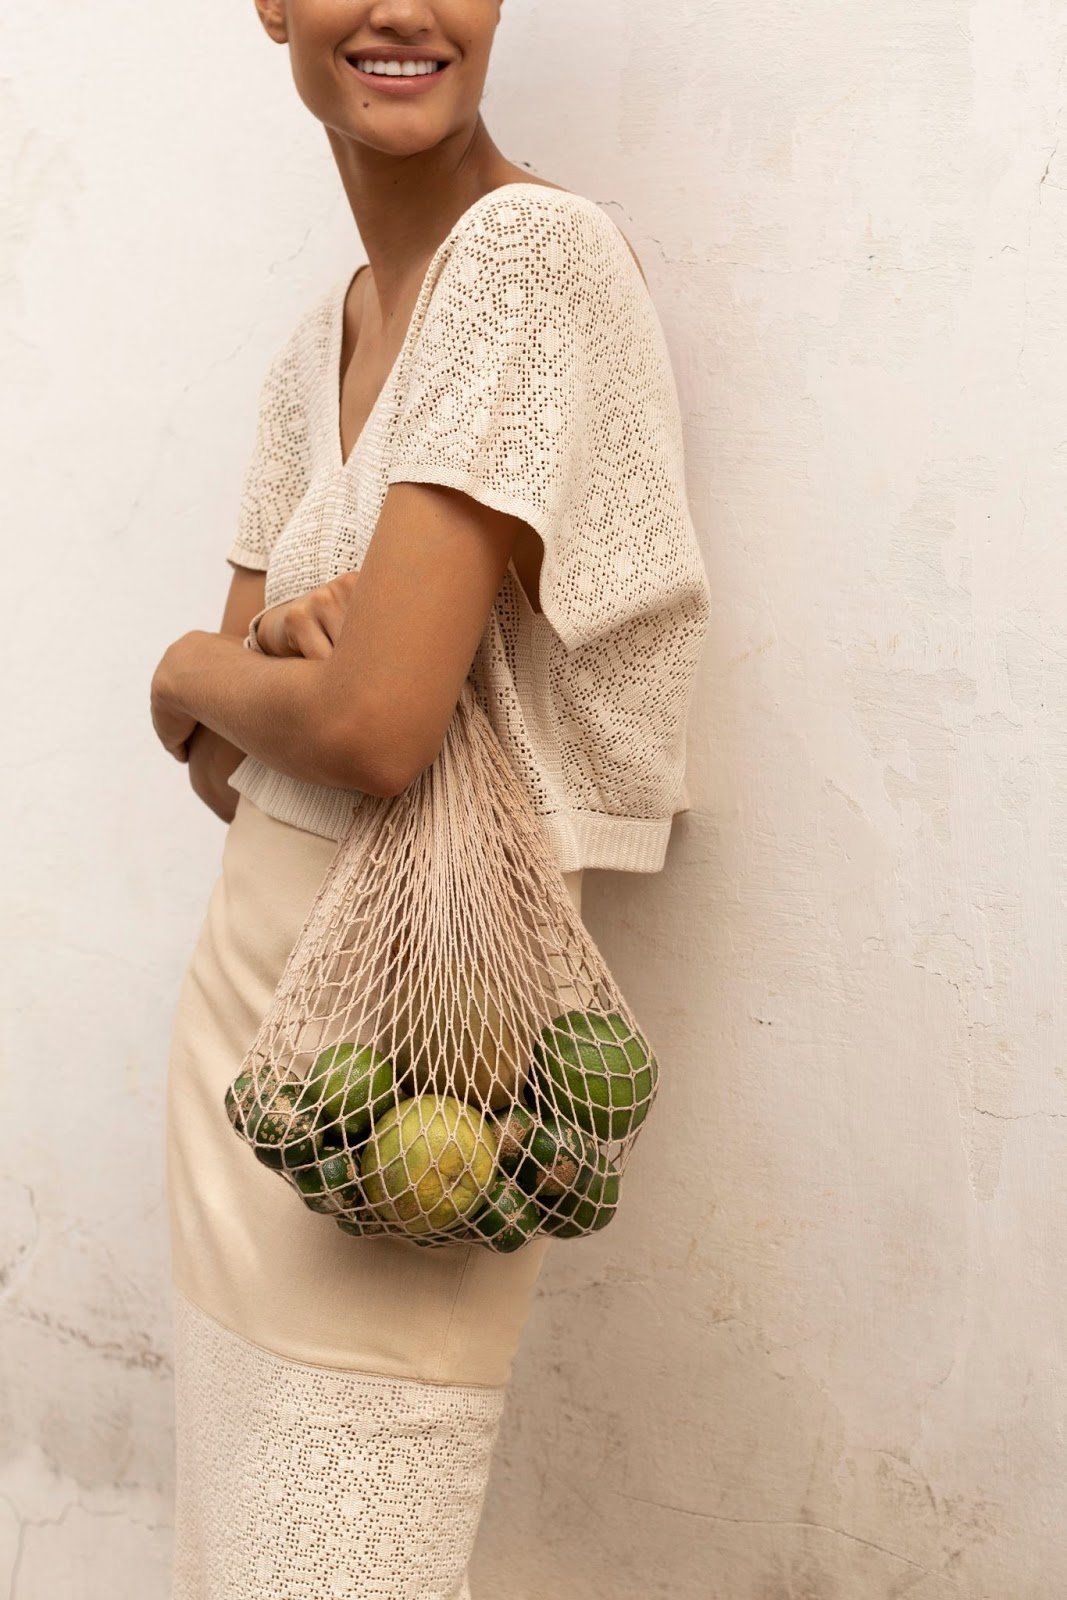 Priah Heritage designs with crocheted inserts, created by hand in the mountainous region of Boyacá, Colombia.